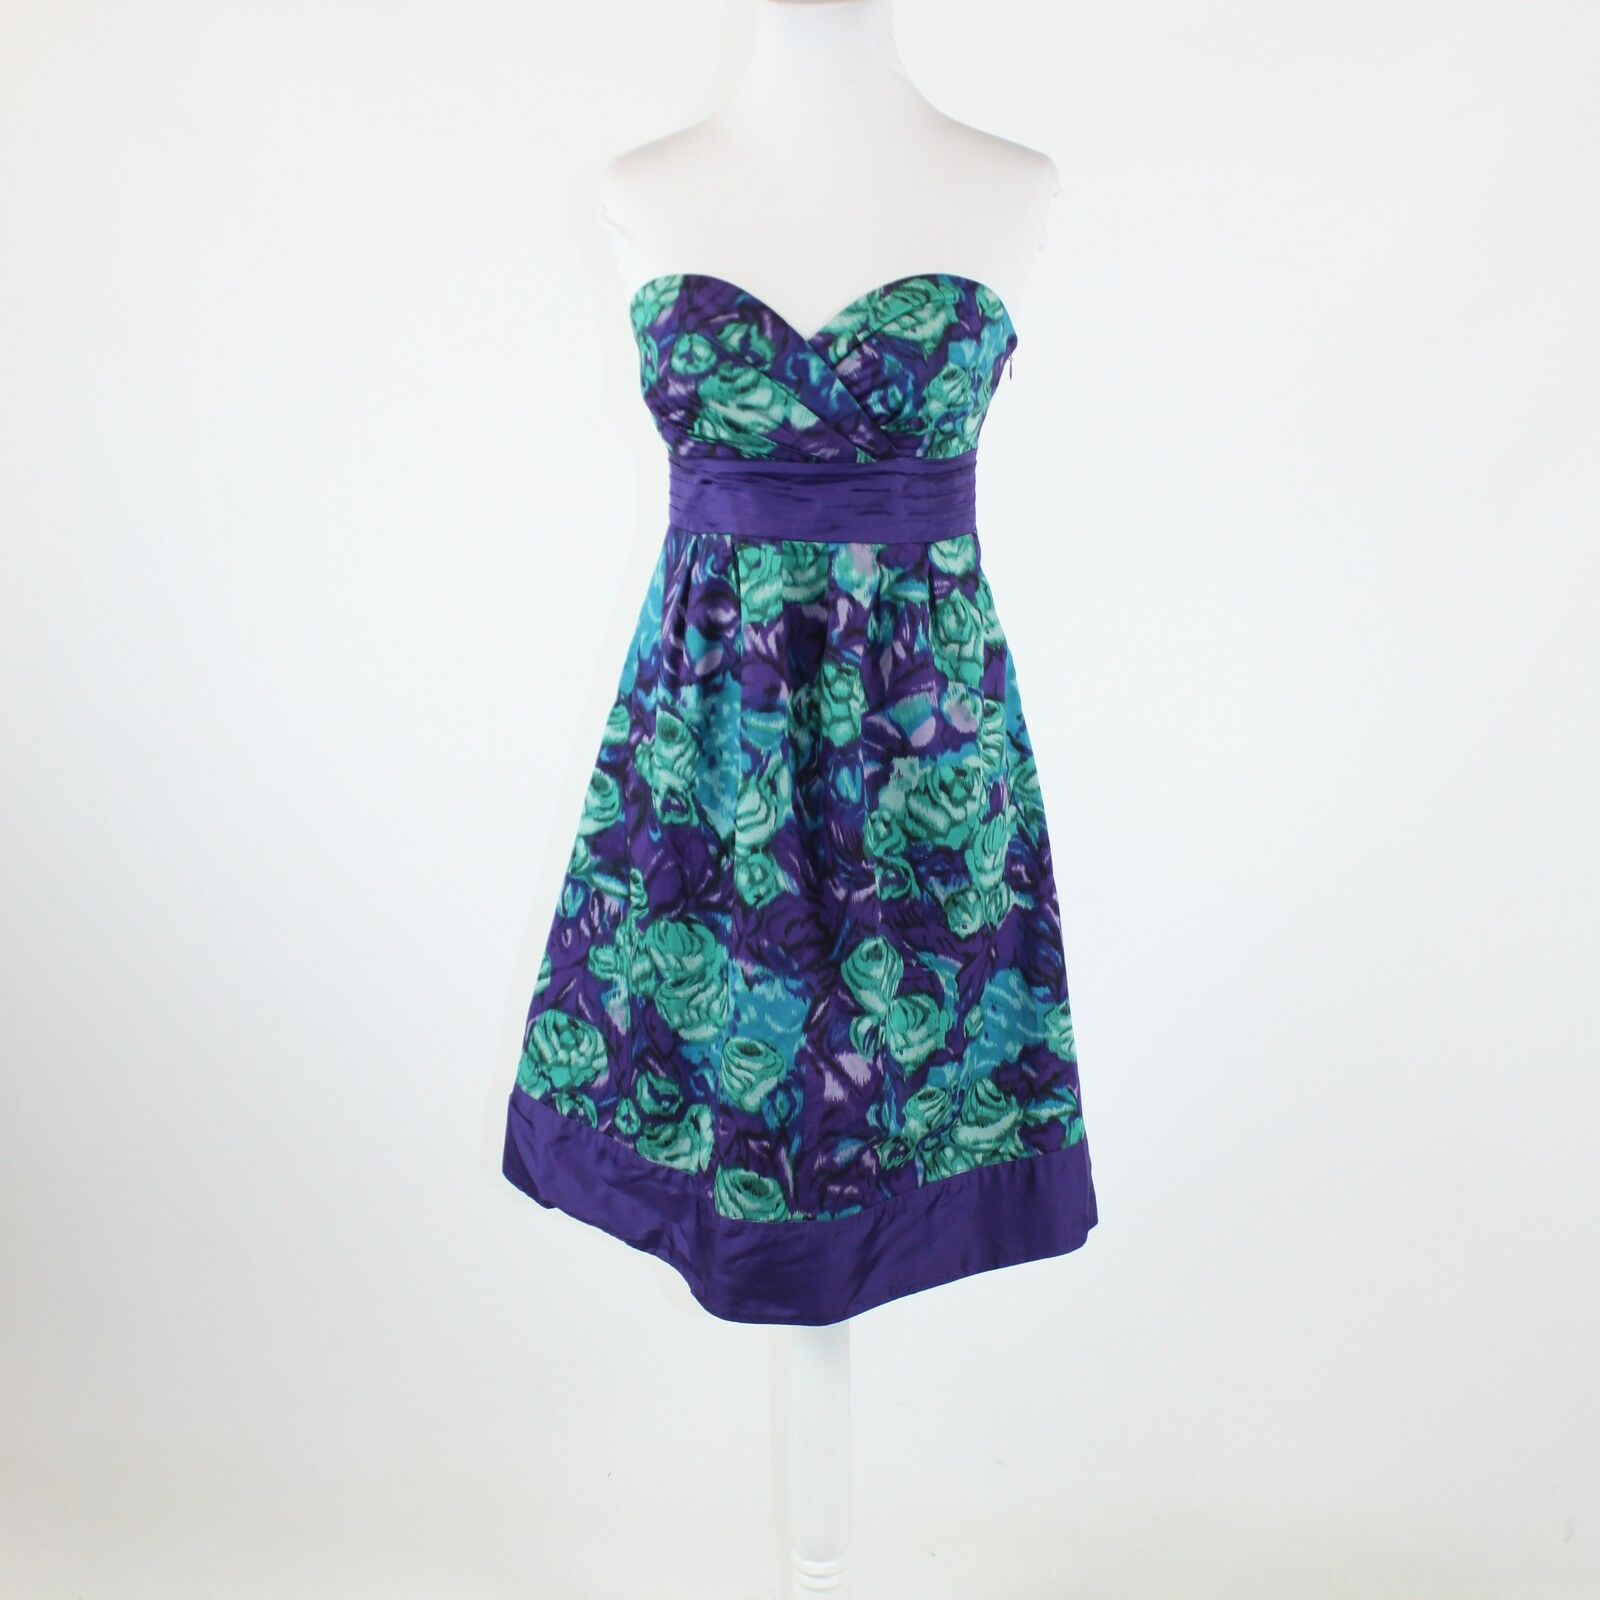 Purple green abstract floral 100% cotton ANTHROPOLOGIE MOULINETTE SOEURS dress 4